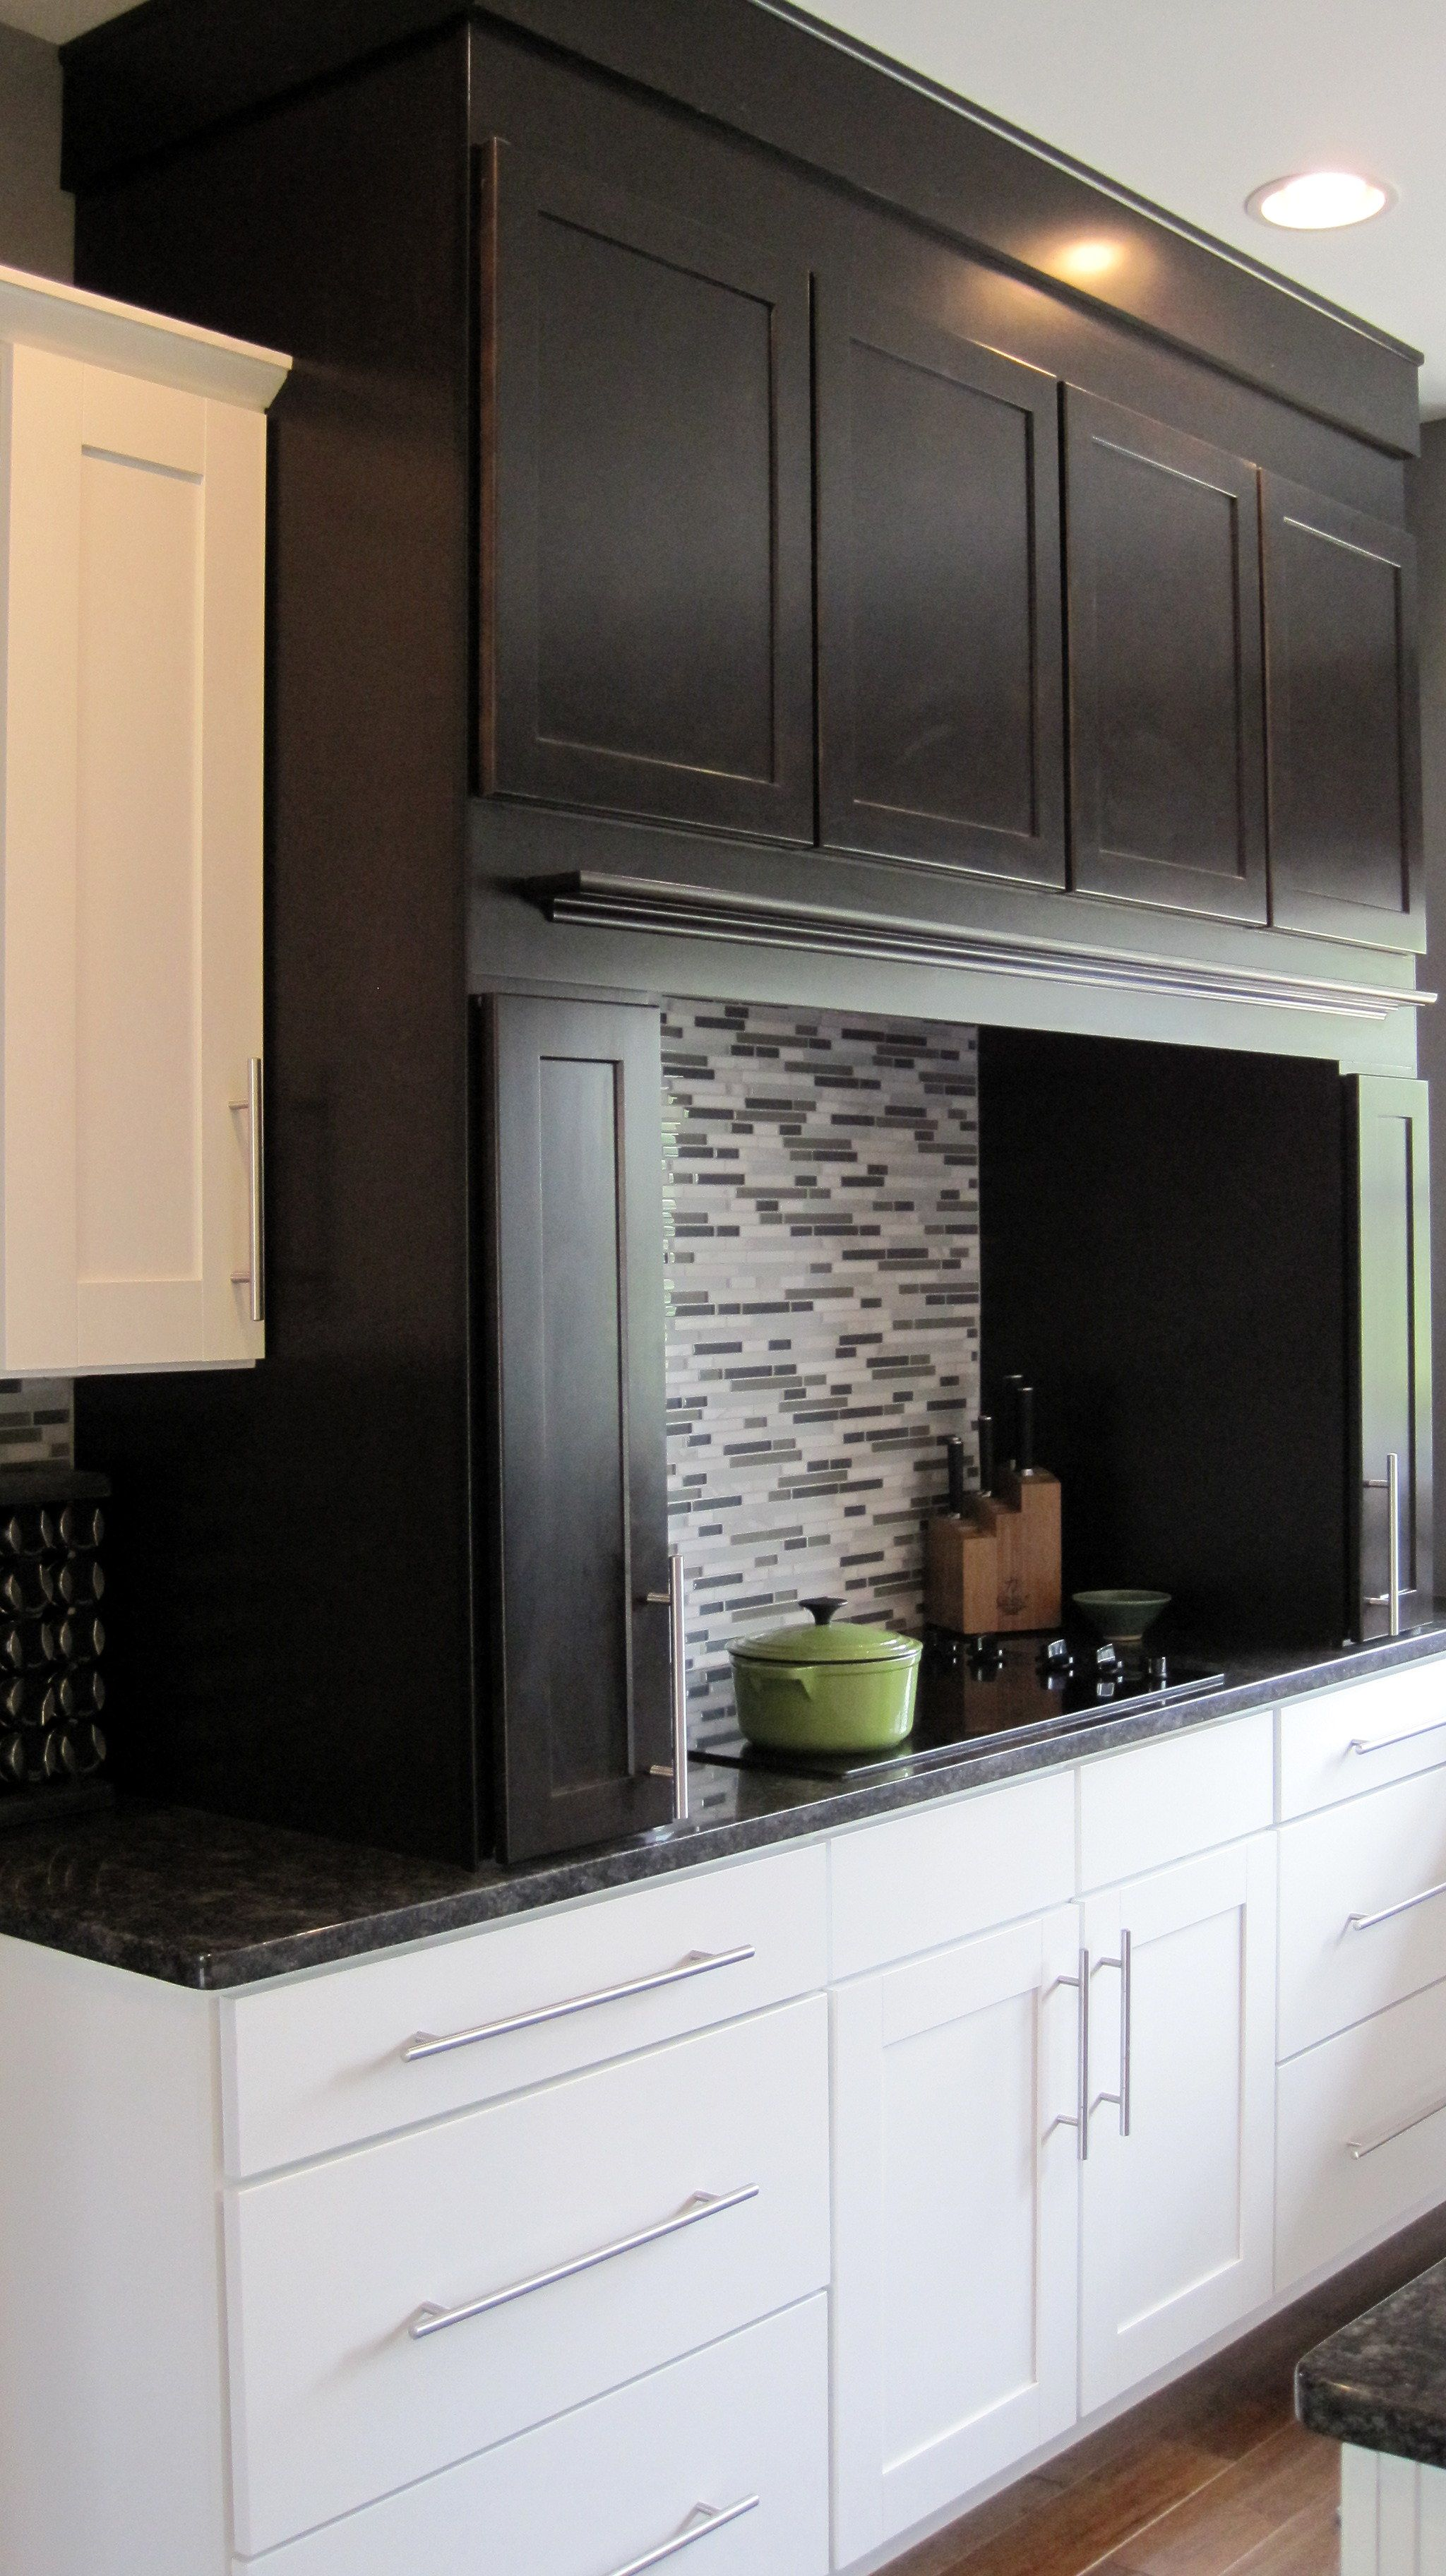 Two Tone Kitchen Cabinets White Cabinets And Darker Wood Cabinets Prefer The Dark On The Botto Kitchen Cabinets Espresso Kitchen Cabinets Dark Wood Cabinets